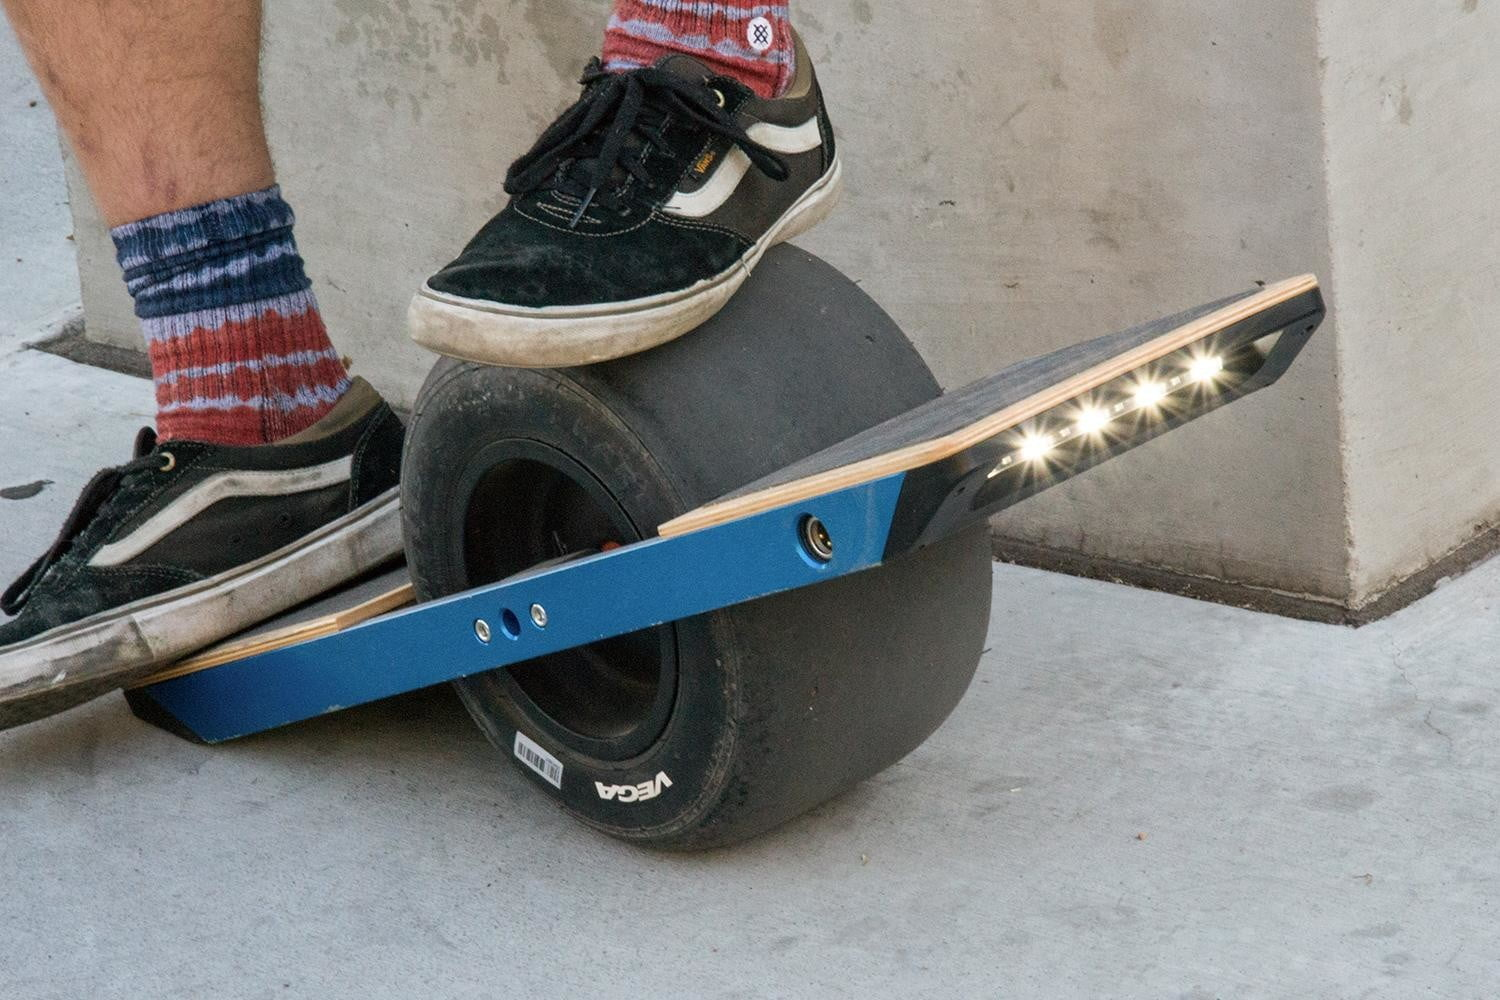 Onewheel Looks Like A Balance Board Rides Hoverboard Digital Trends